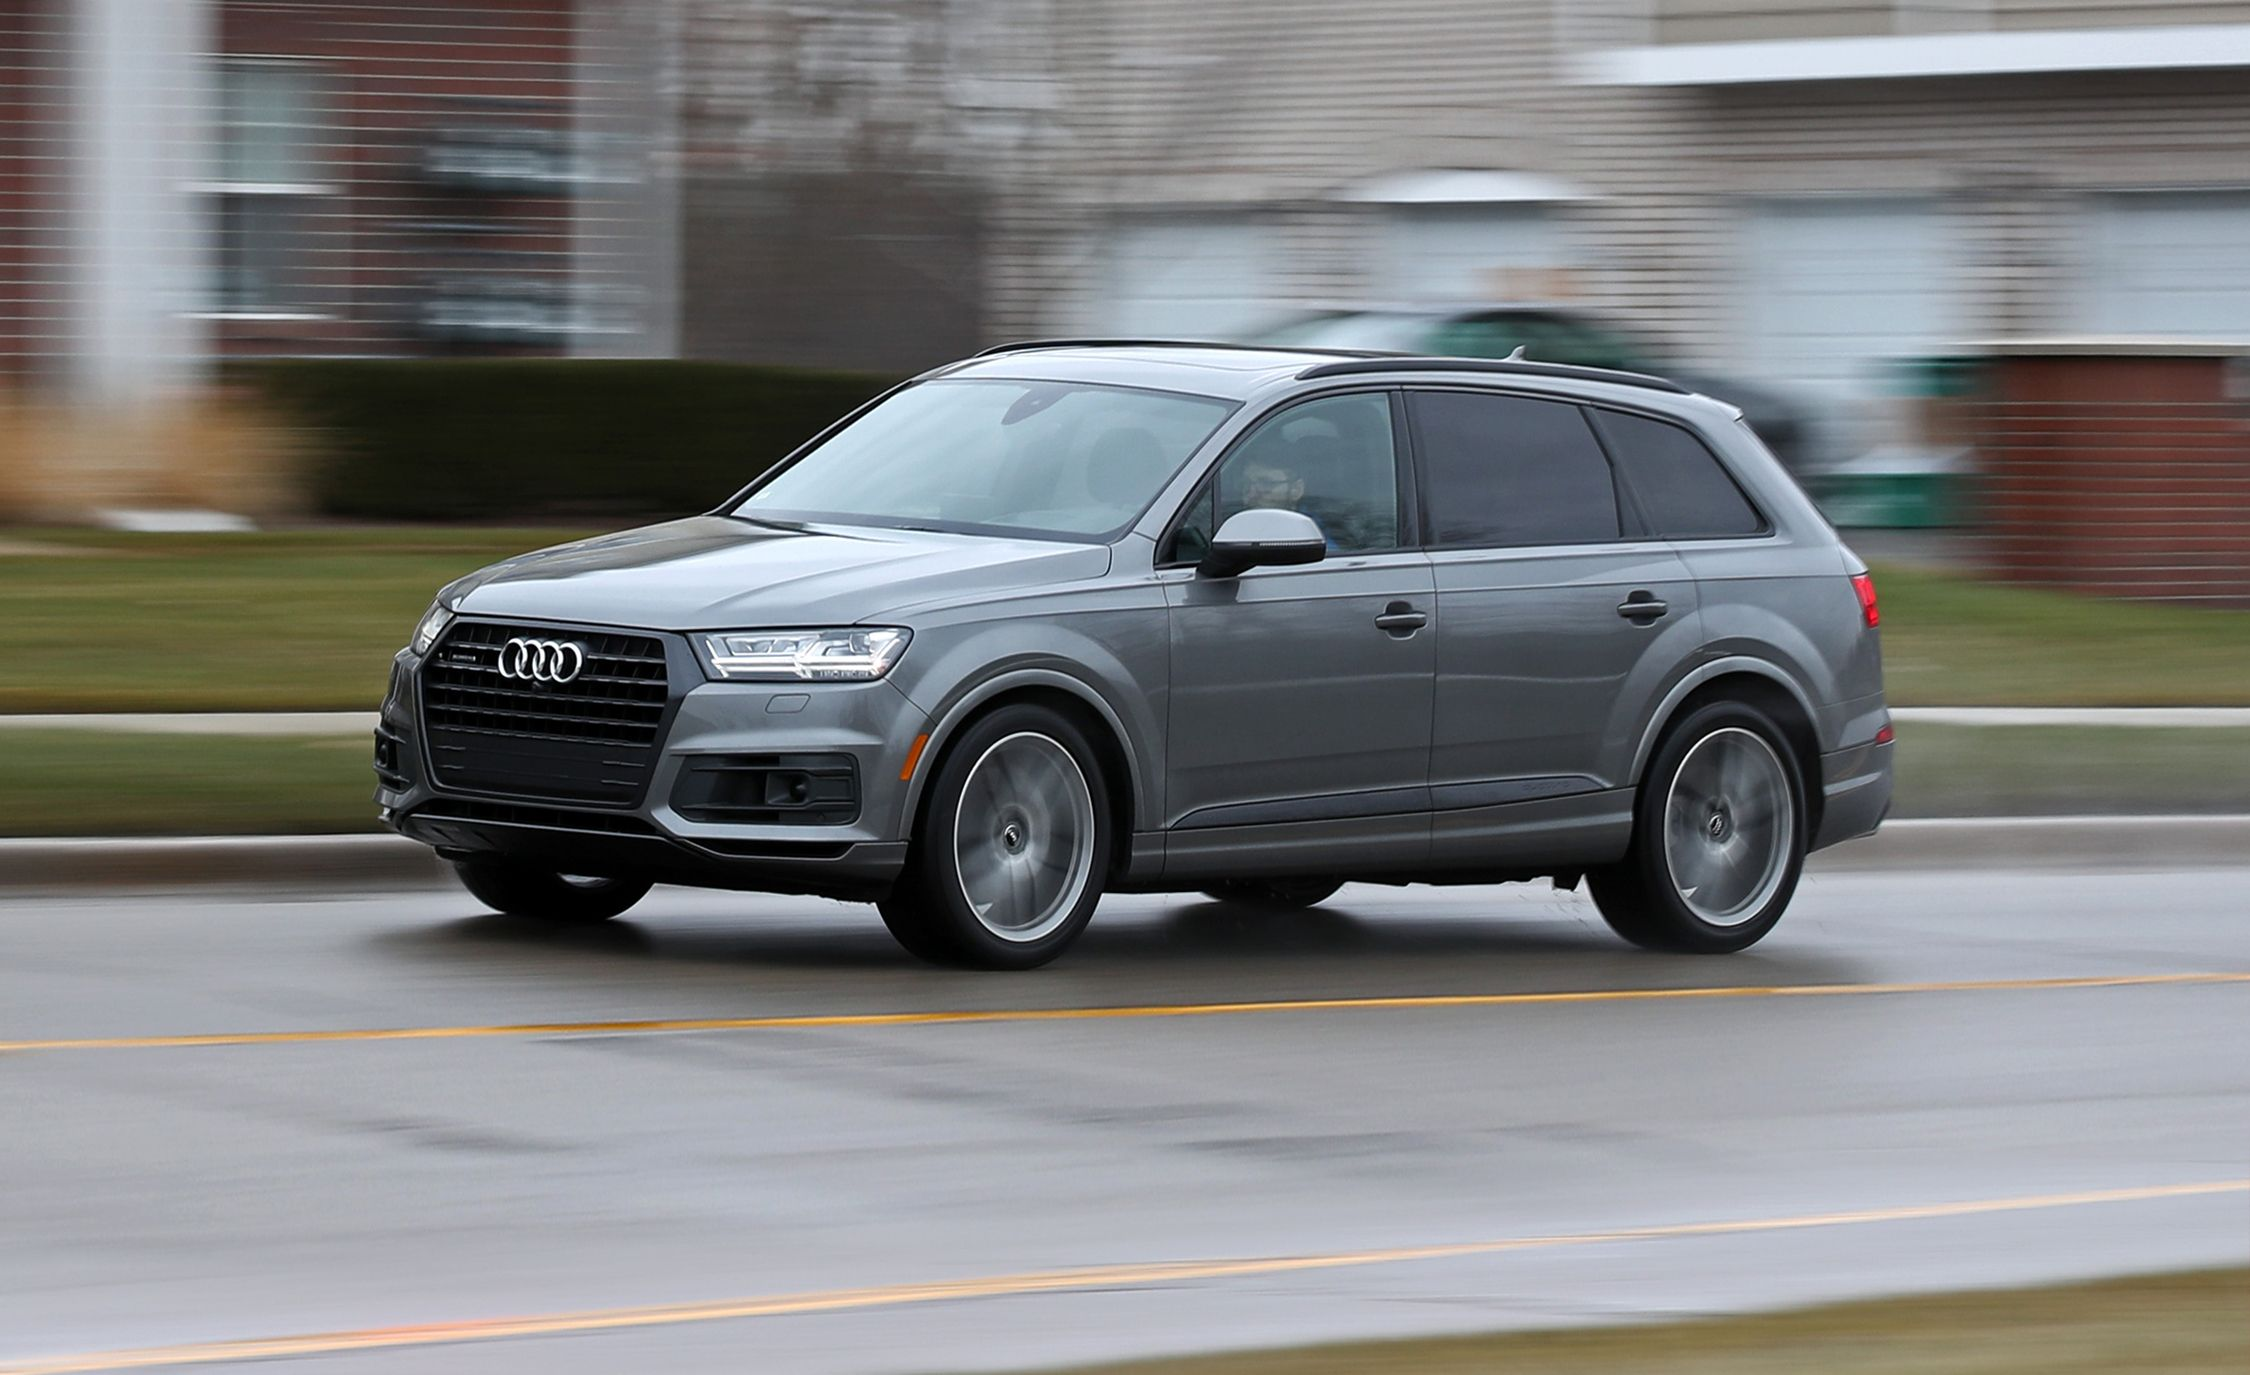 Audi Q T Quattro LongTerm Test Review Car And Driver - How much is an audi q7